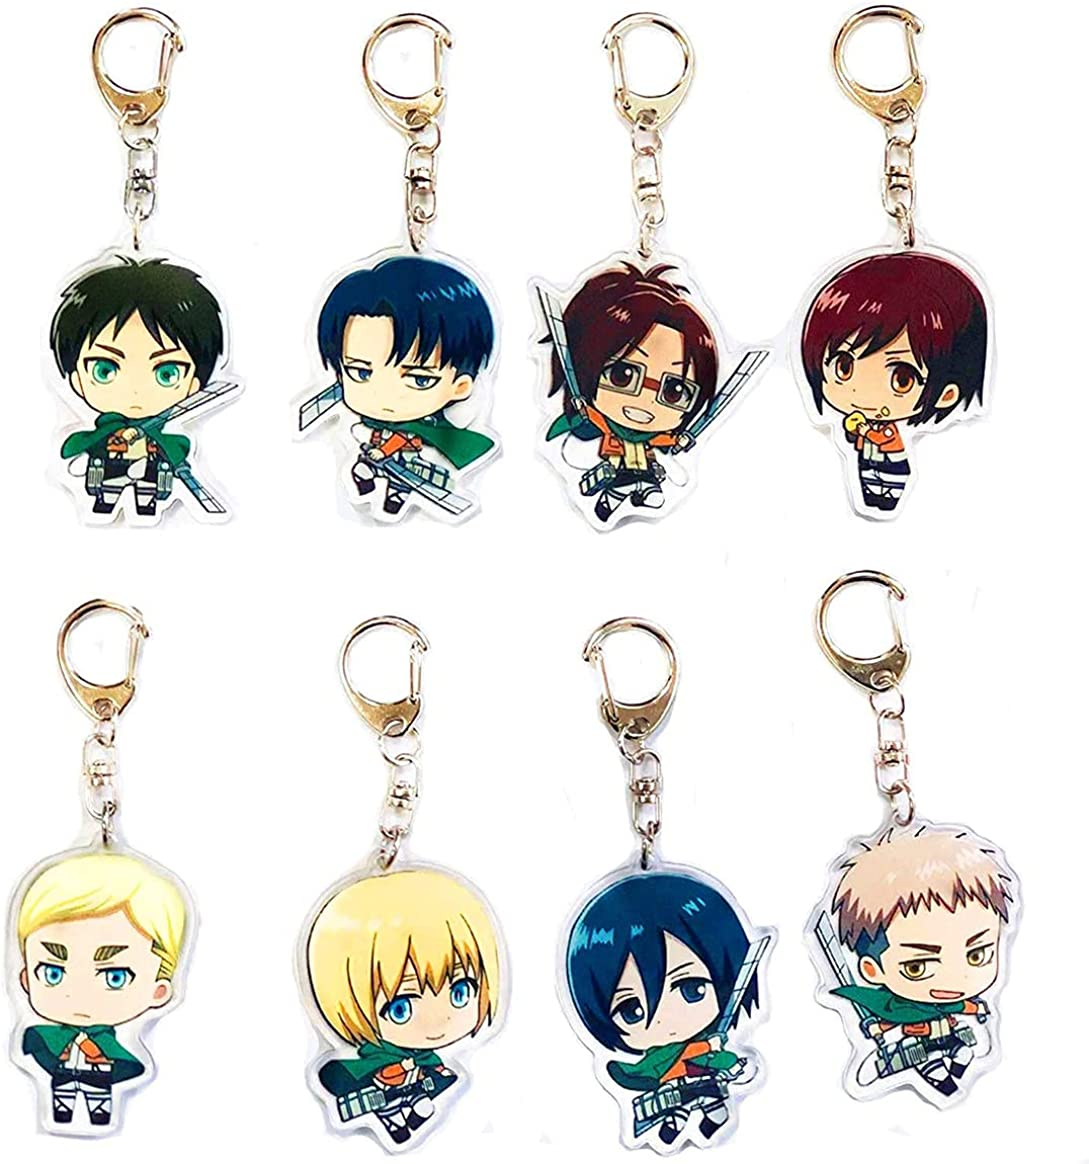 8PCS Attack On Titan Keychain, Anime Keychain for Kid, 8 Collectible Figure Keychains Pendant Hanging for Key, Card, Anime Figure Keyring Accessories